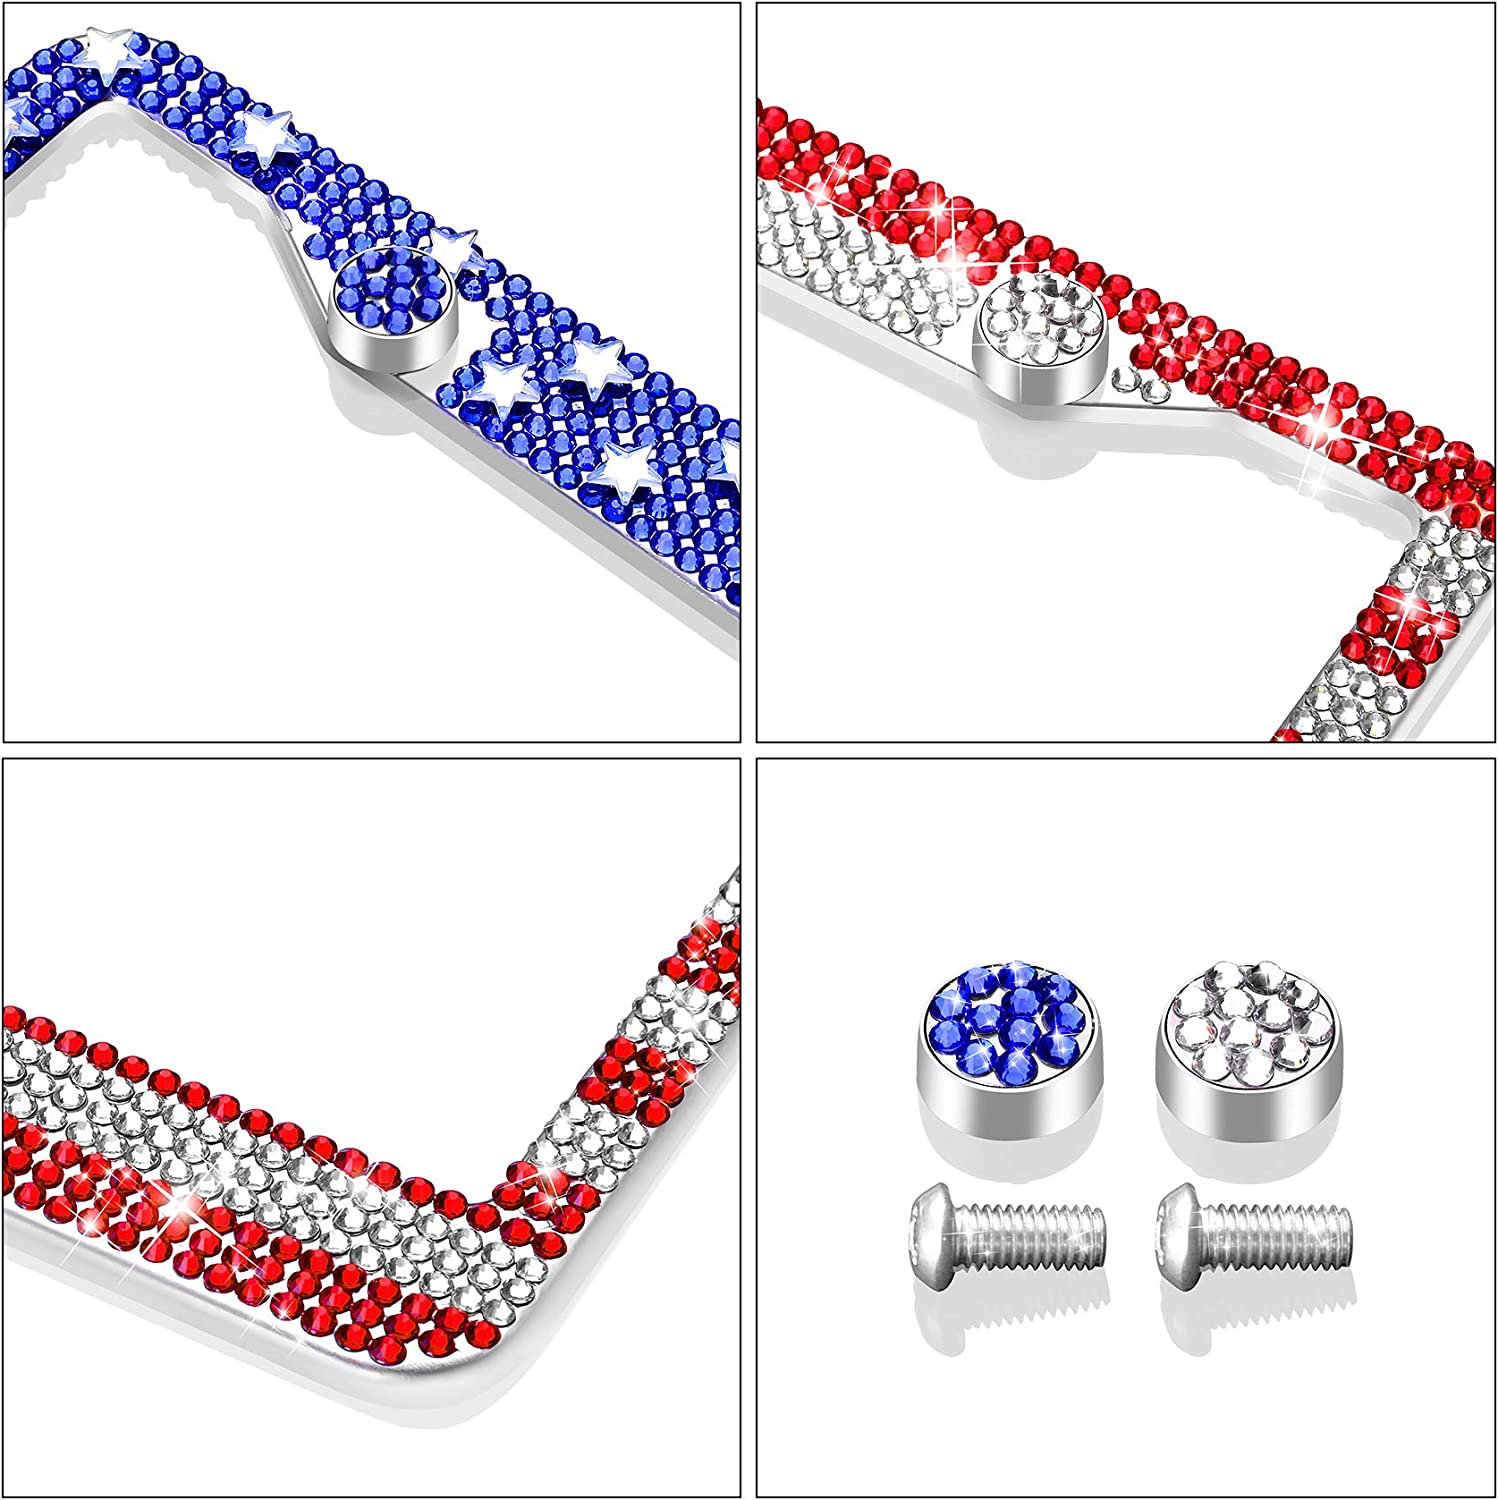 Newzon 2 Pack Car Plates American Flag License Plate Frames Personalized Bling Crystal Rhinestones Diamonds Stainless Steel Car Number Plate Holder Waterproof 2 Hole Anti-Theft in Novelty Gift Box